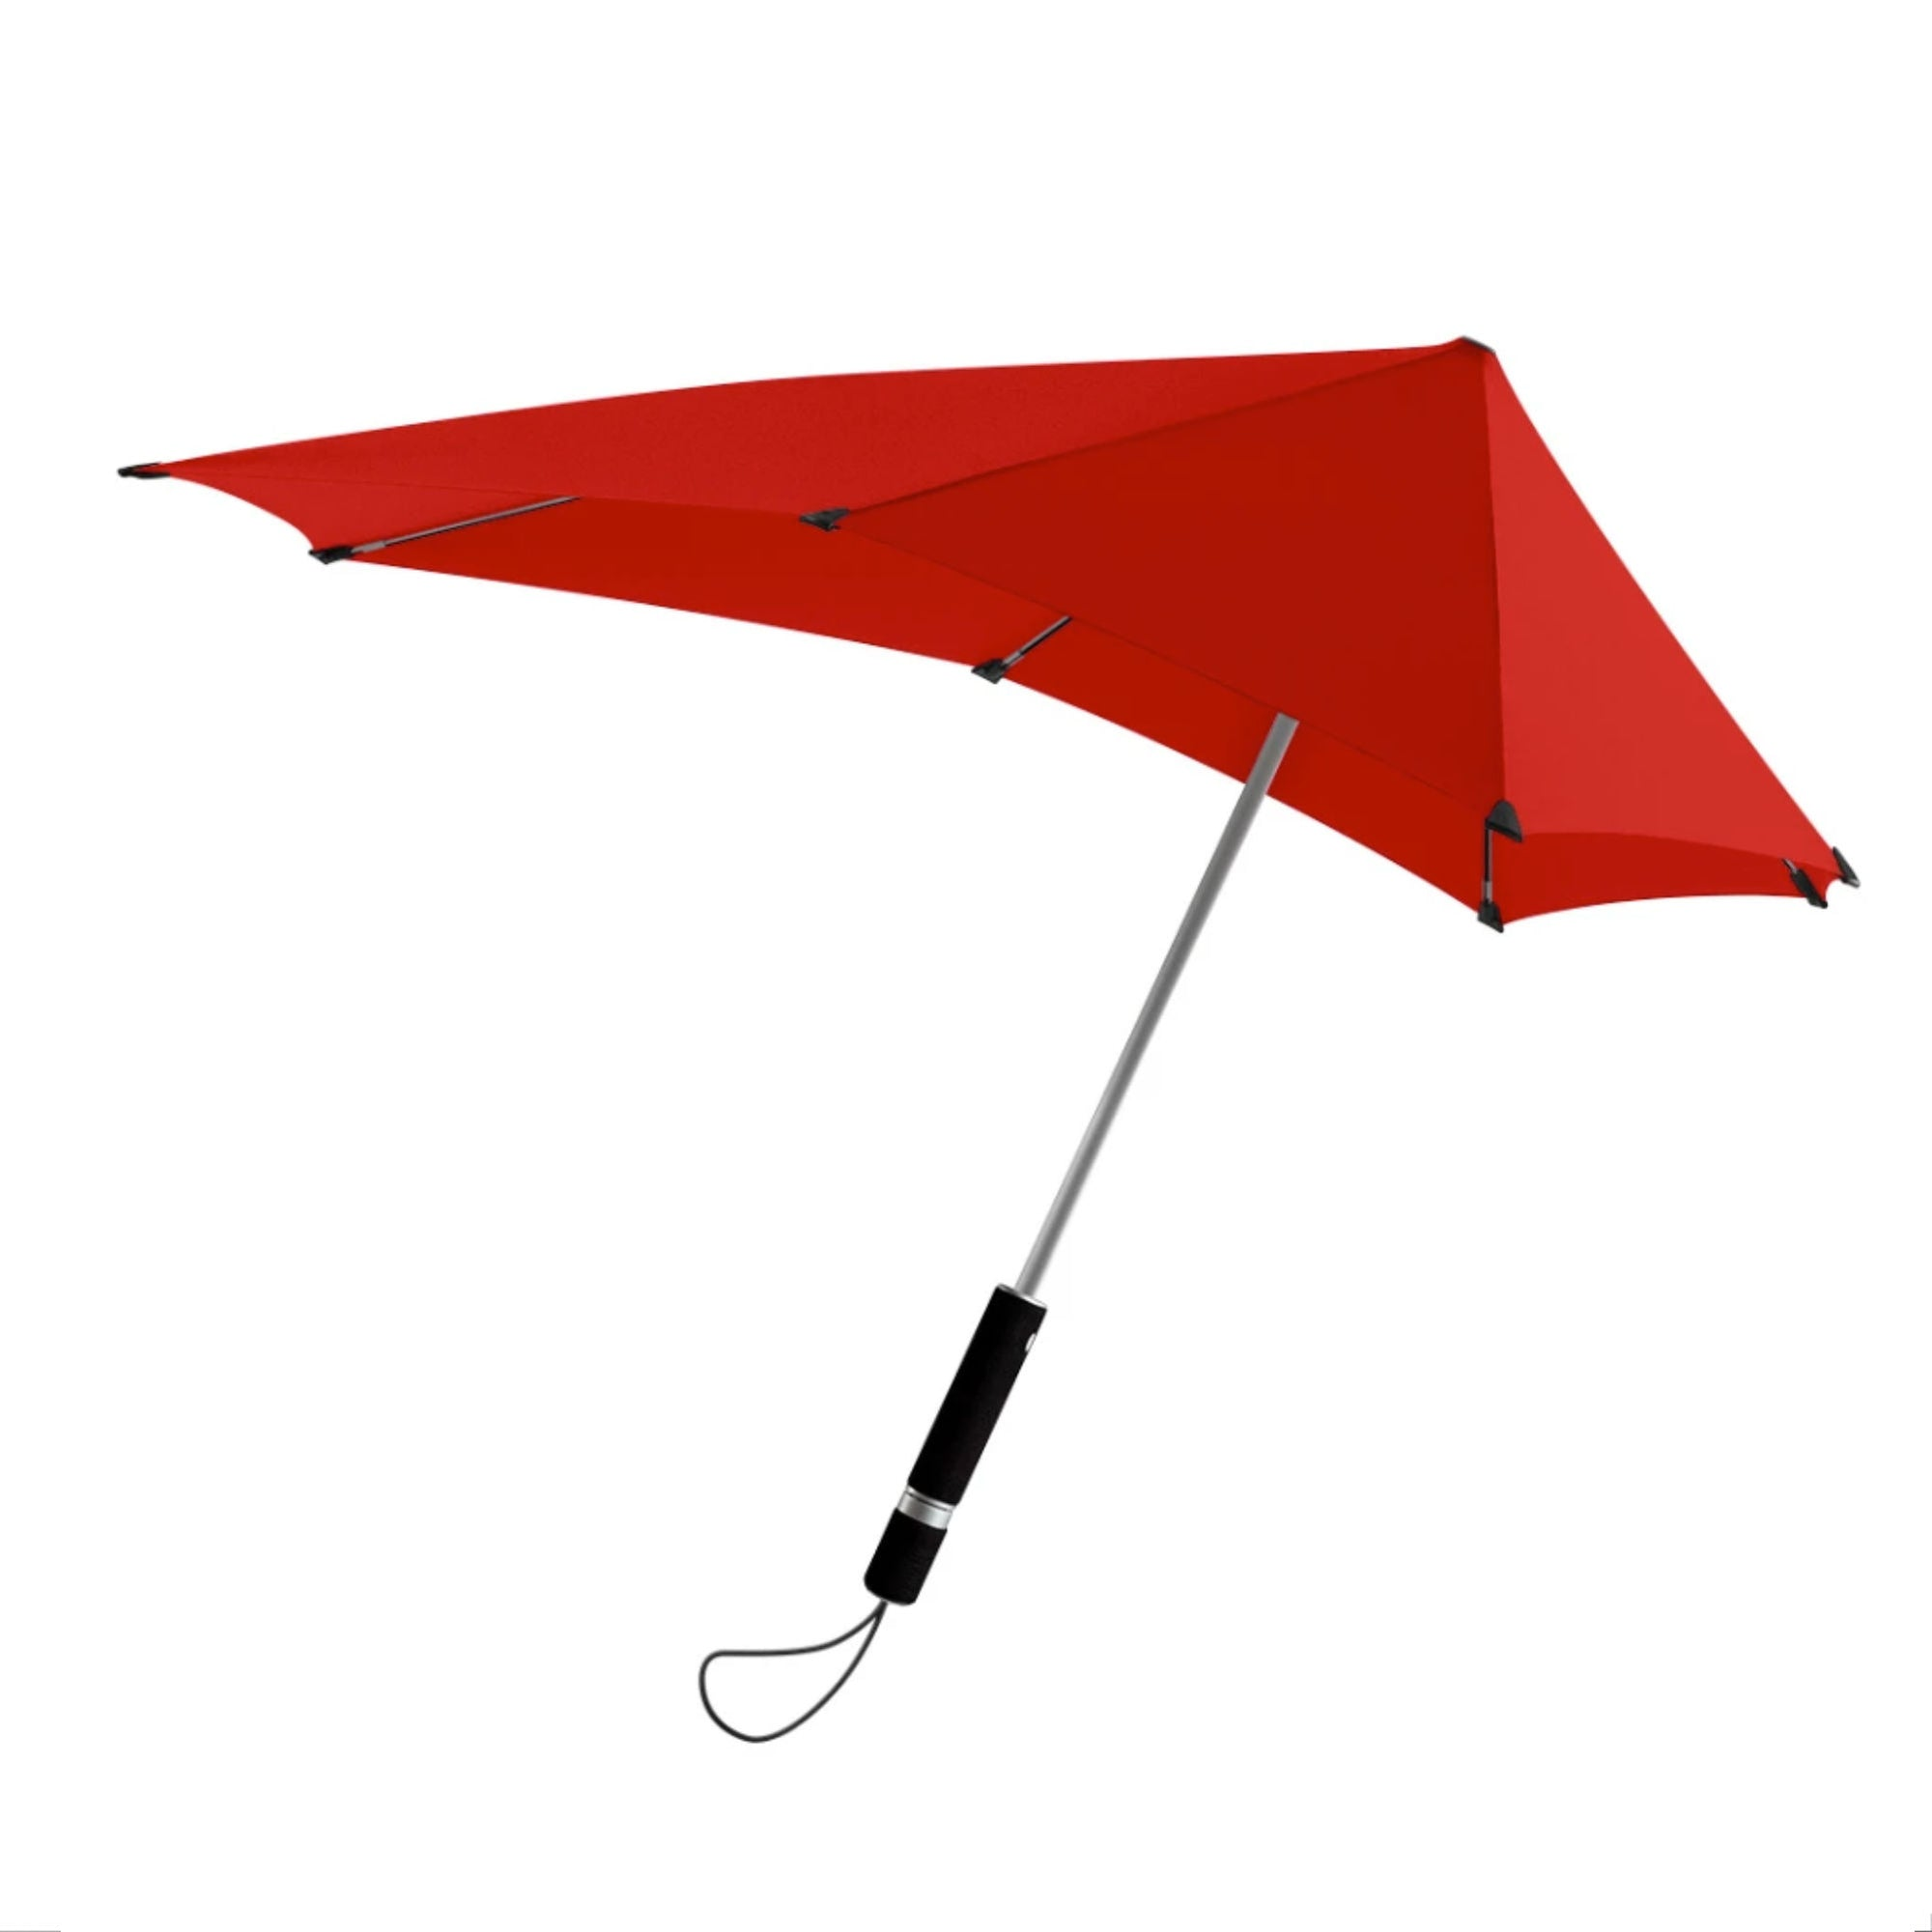 Senz° Original storm umbrella, passion red